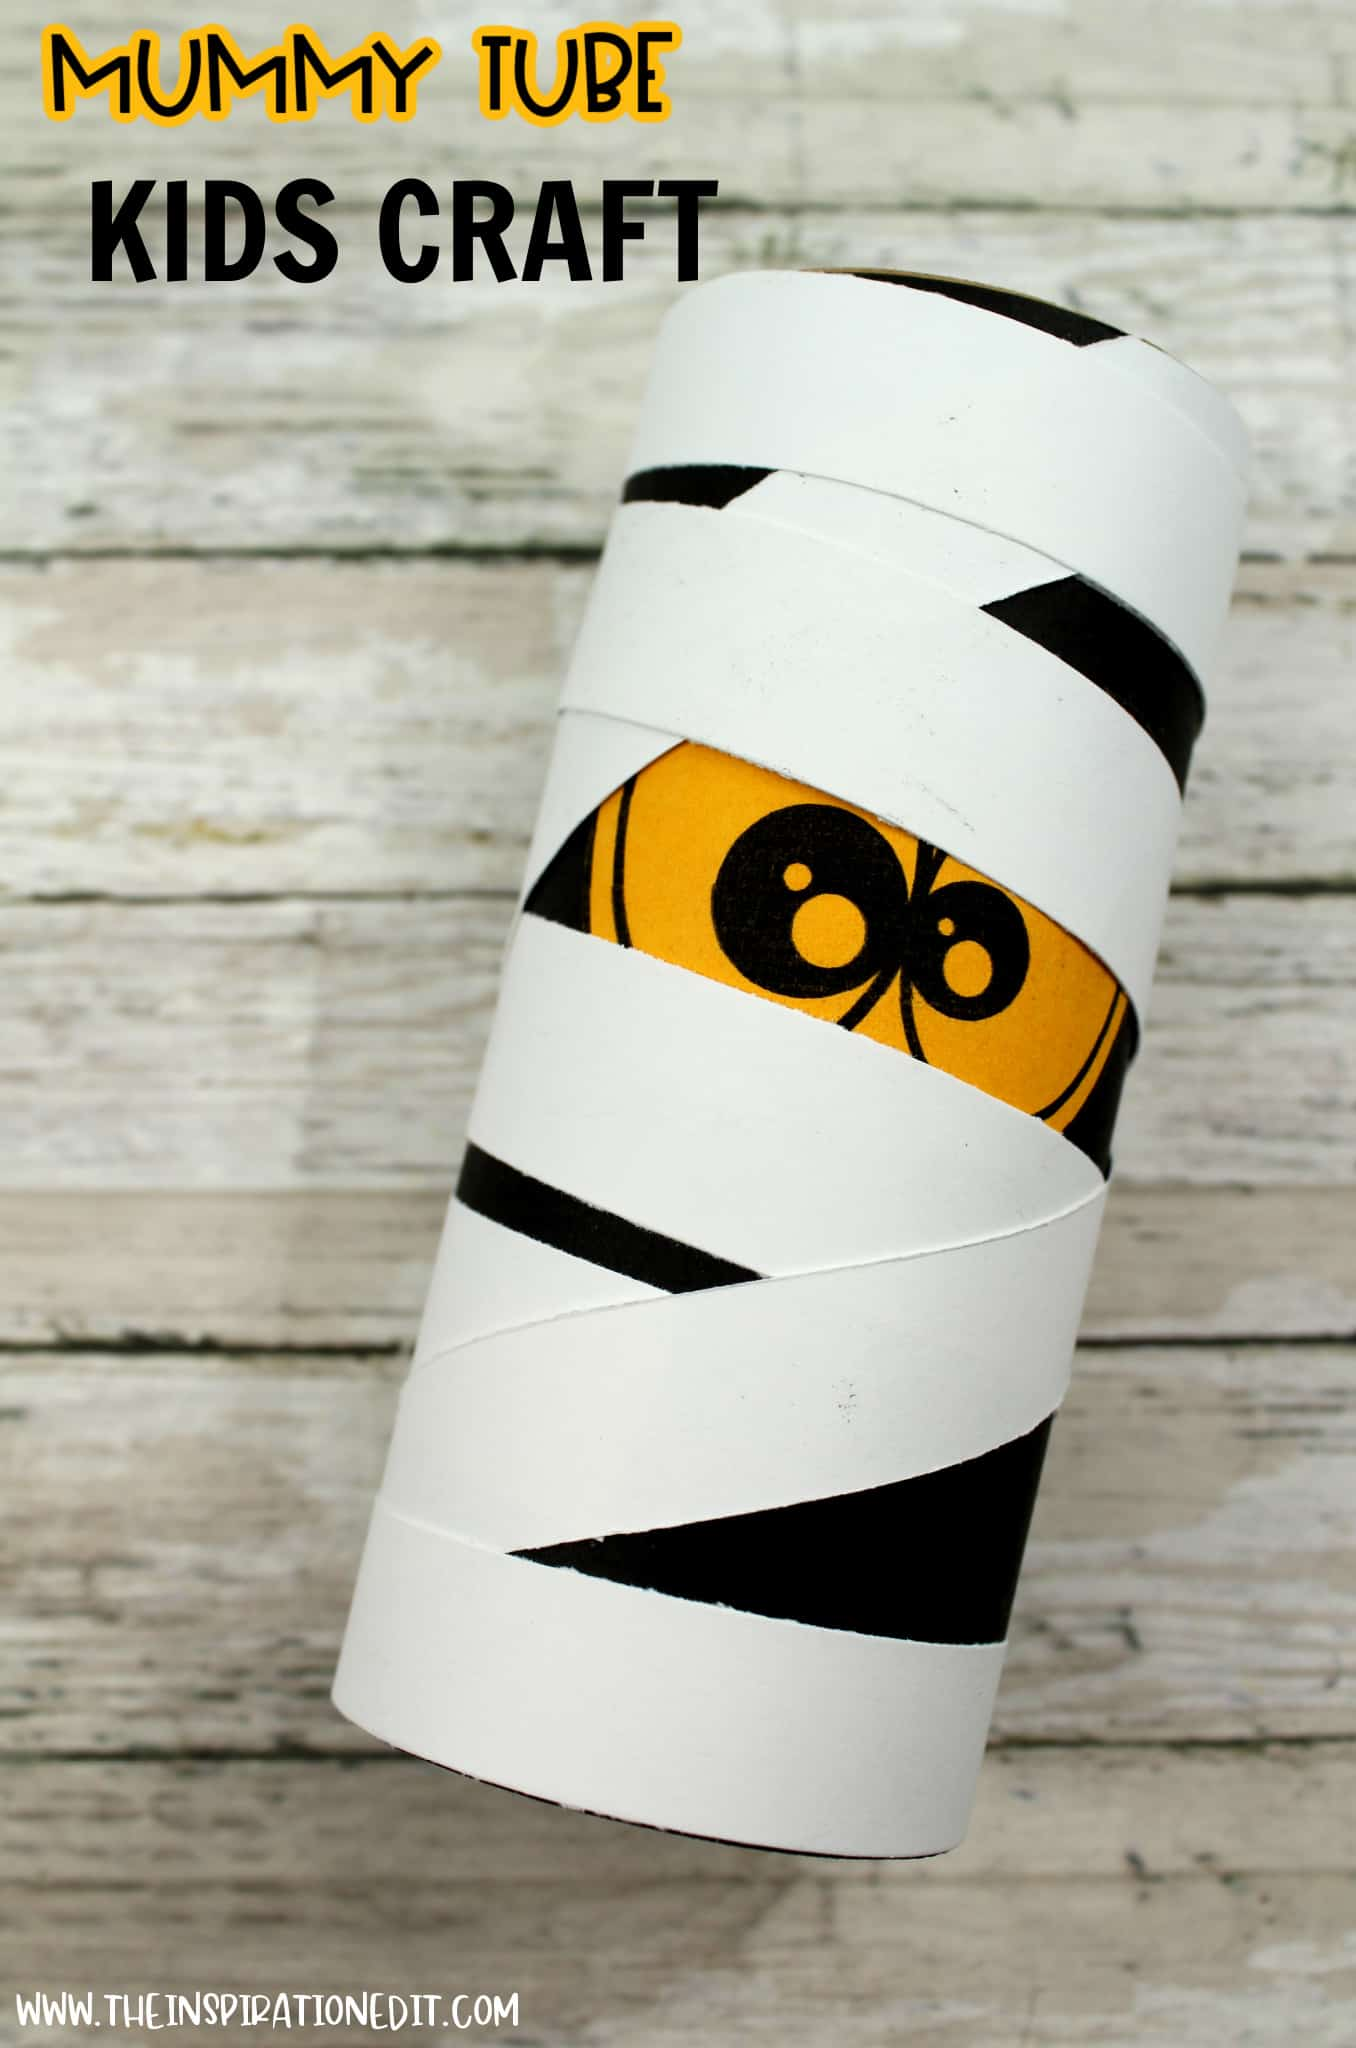 toilet tube mummy for halloween